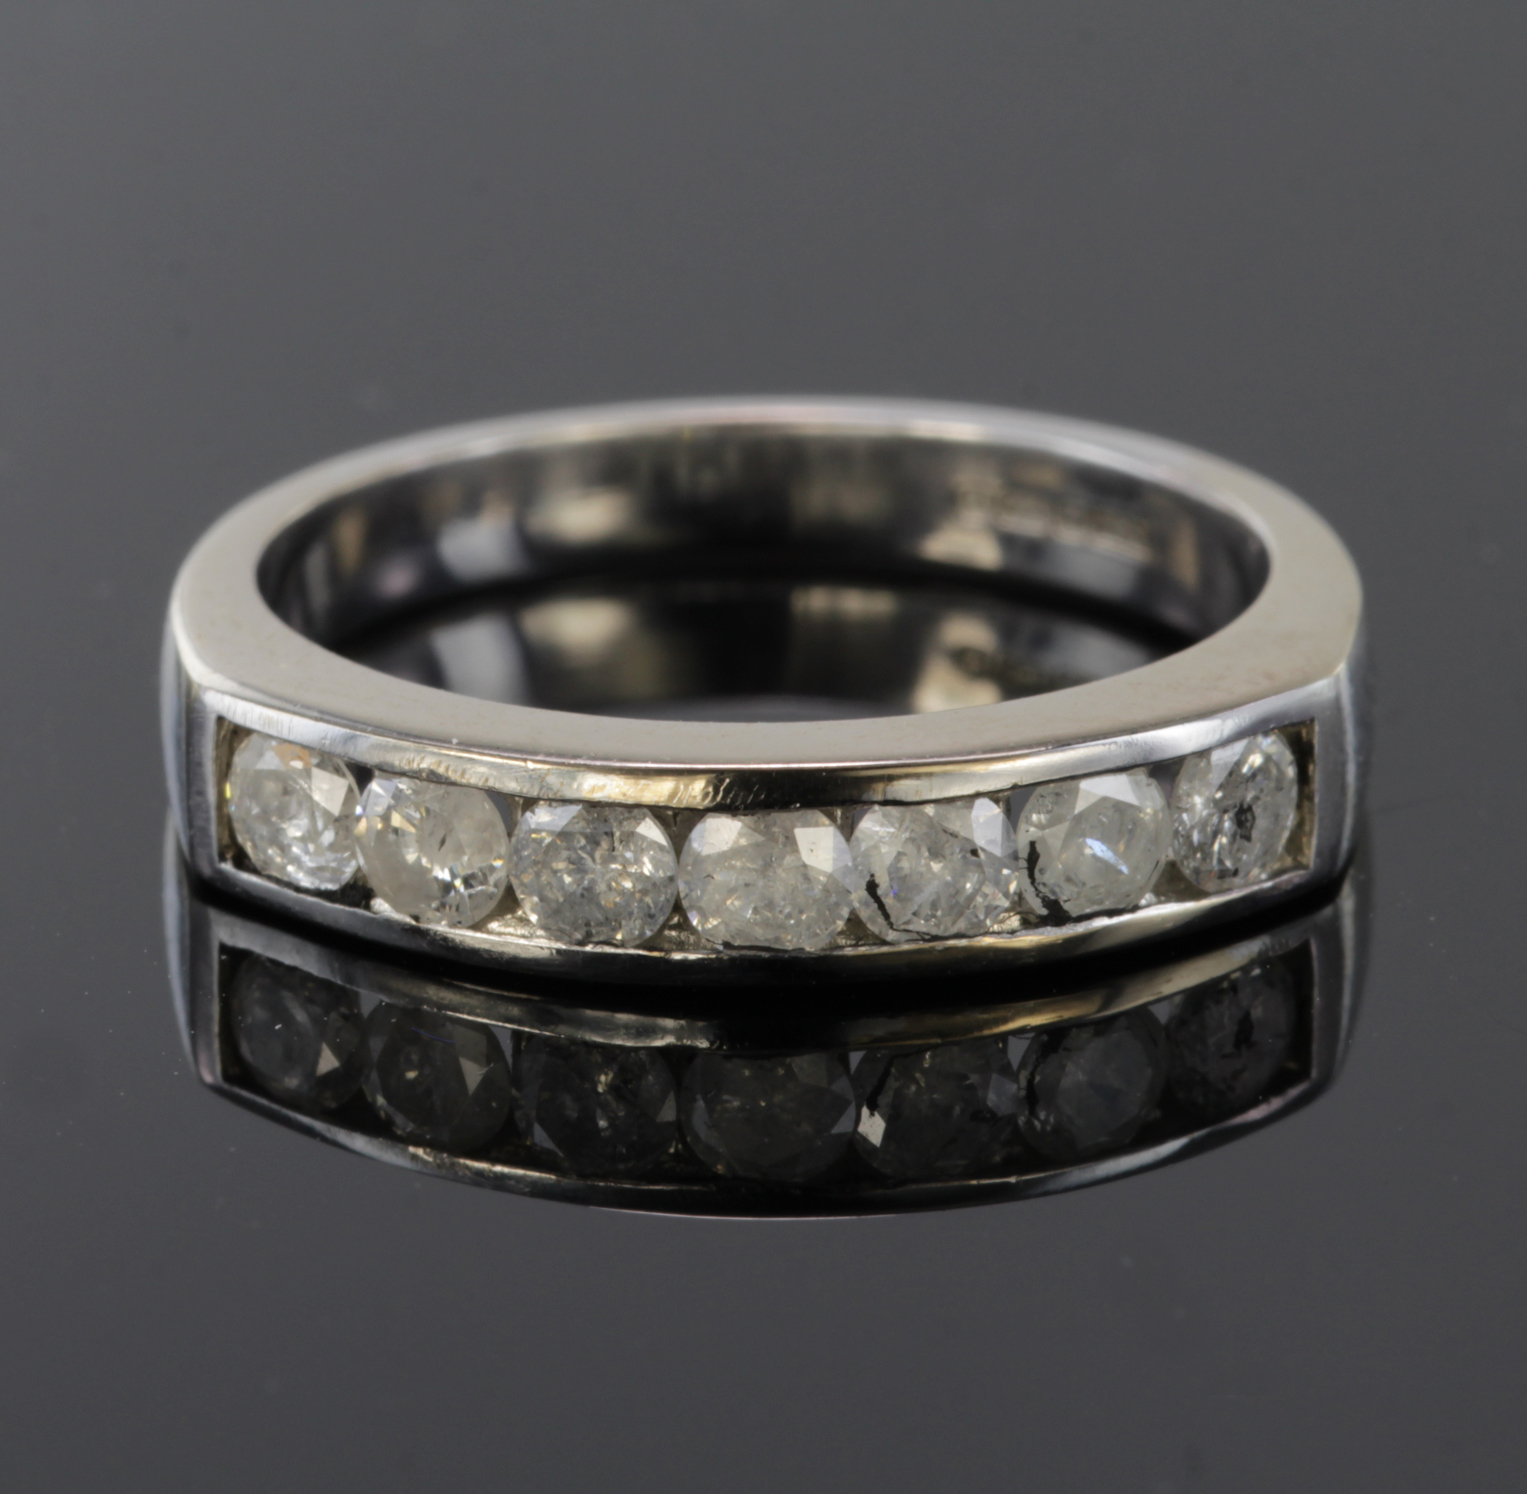 Lot 29 - 18ct White Gold seven stone channel set Diamond Ring size N weight 5.0g